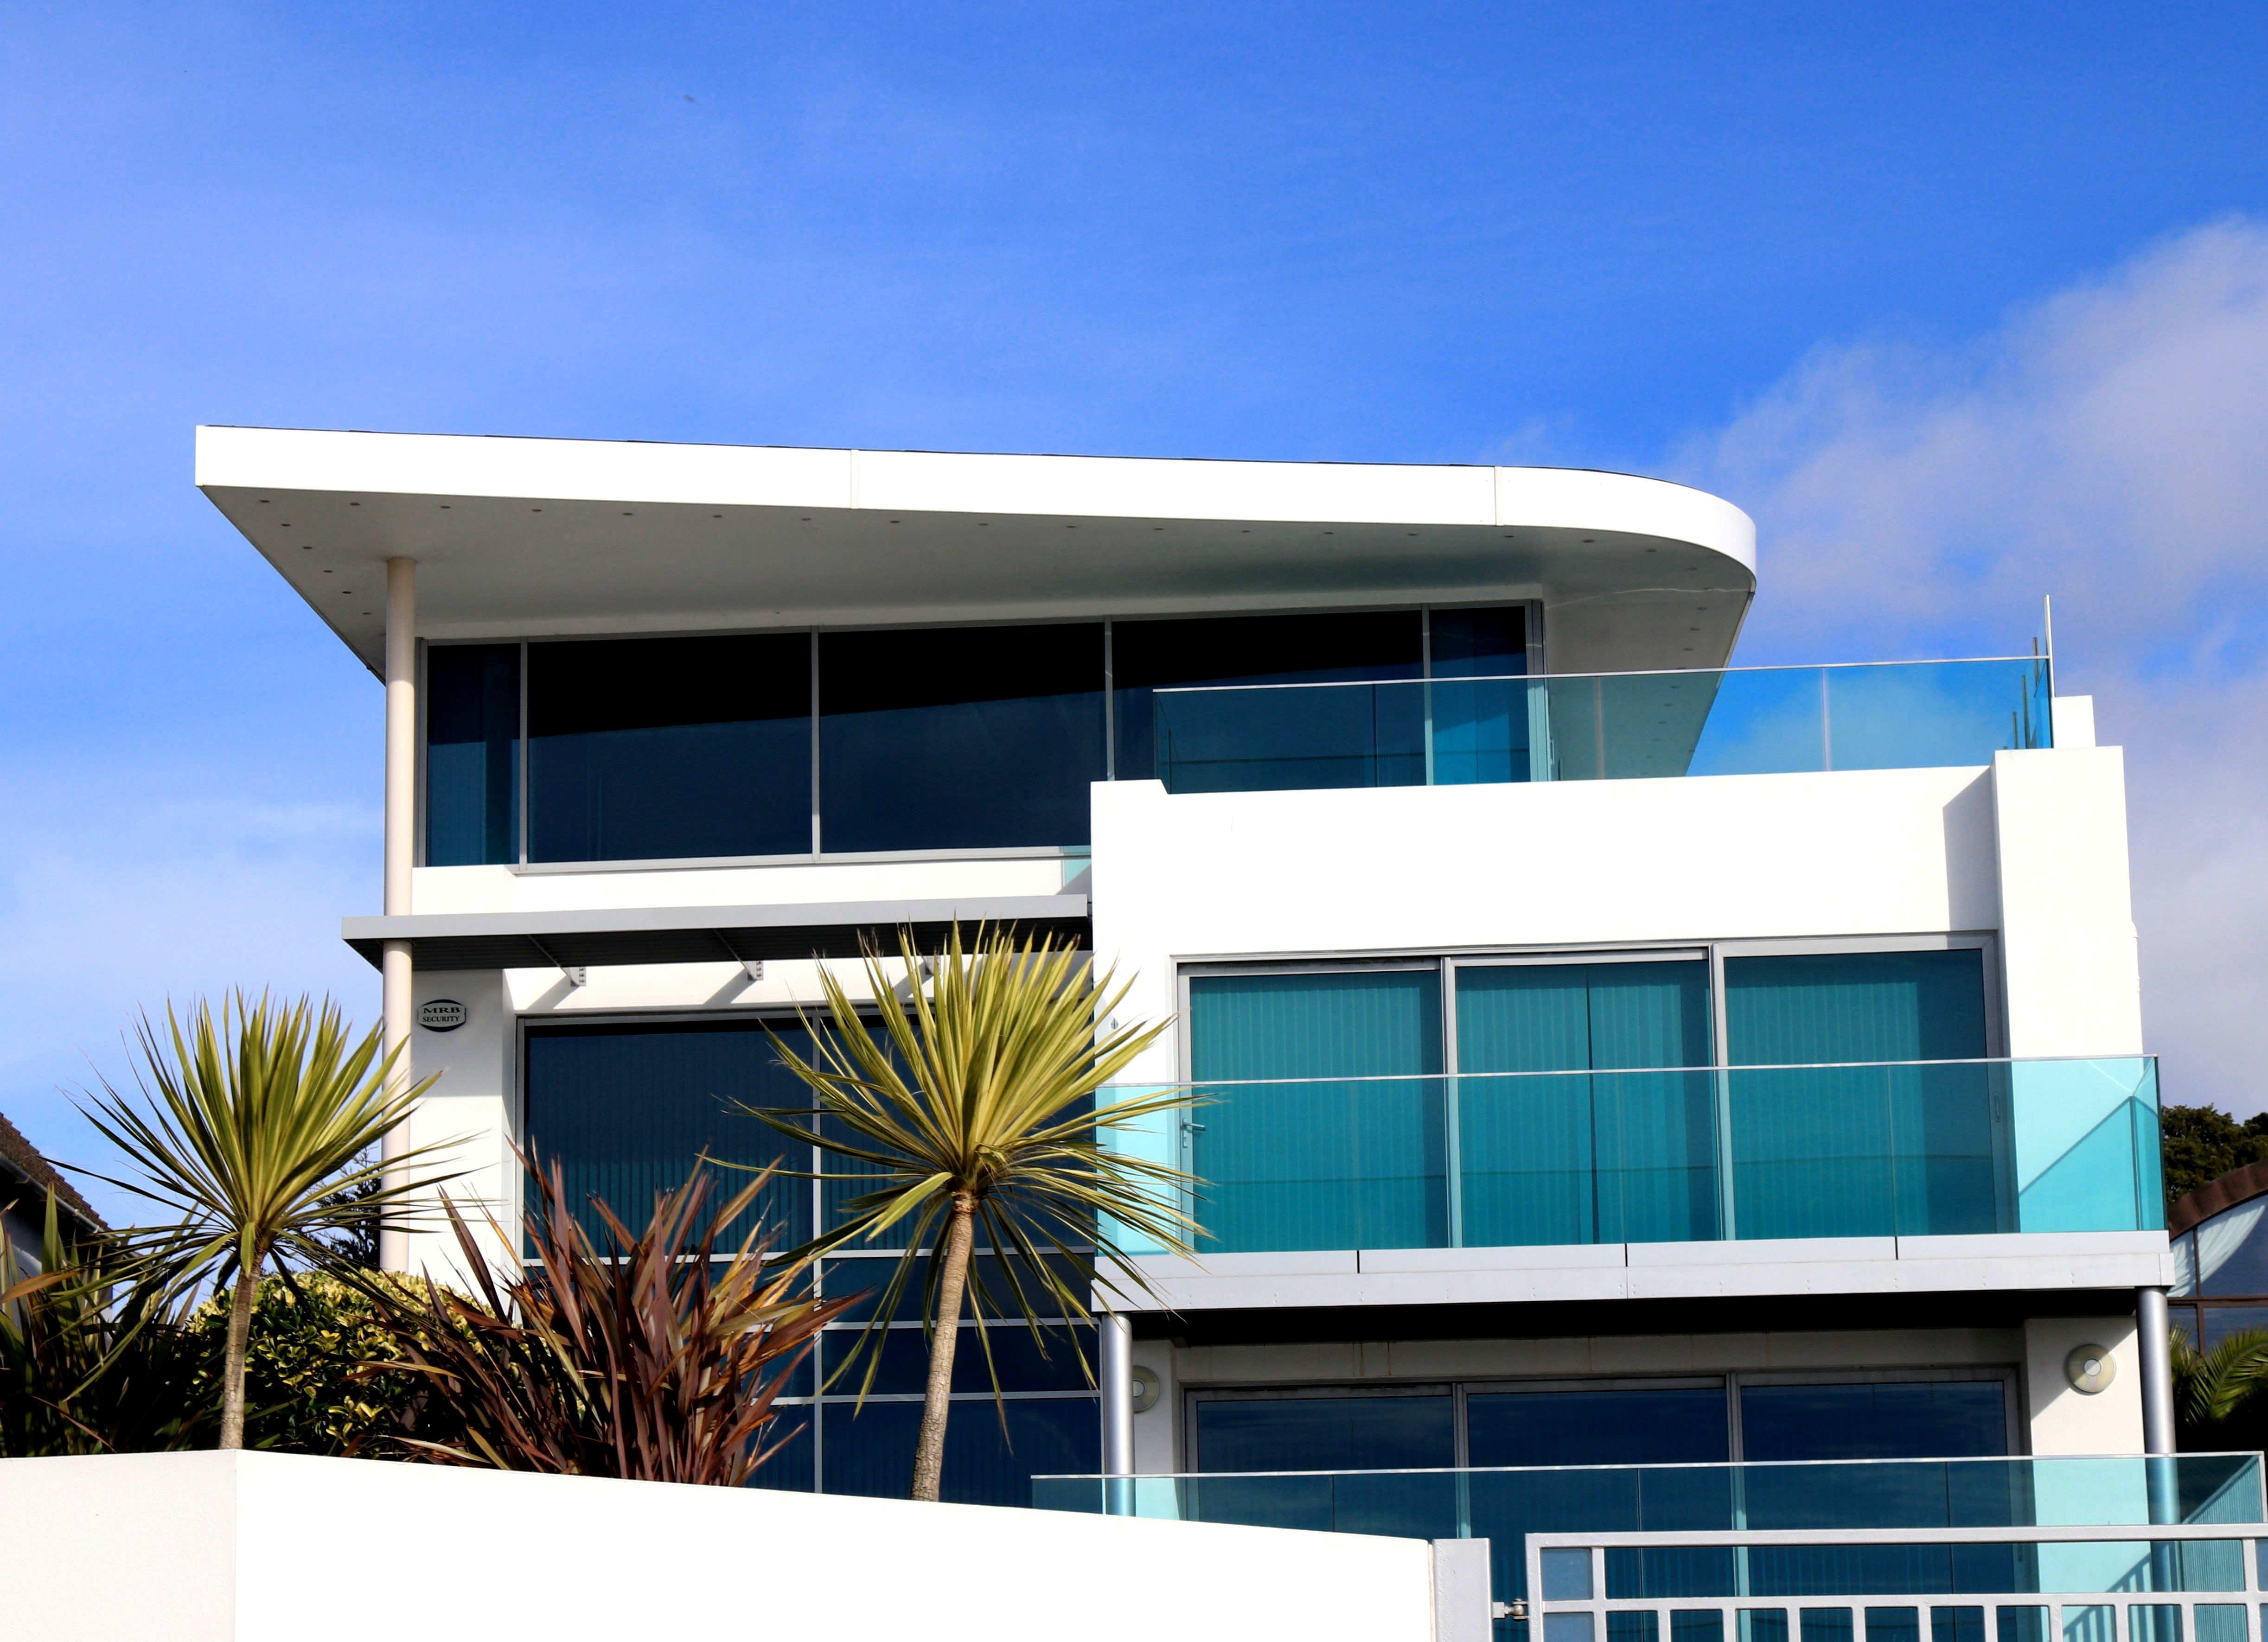 Modern Building Against Blue Sky  Free Stock Photo